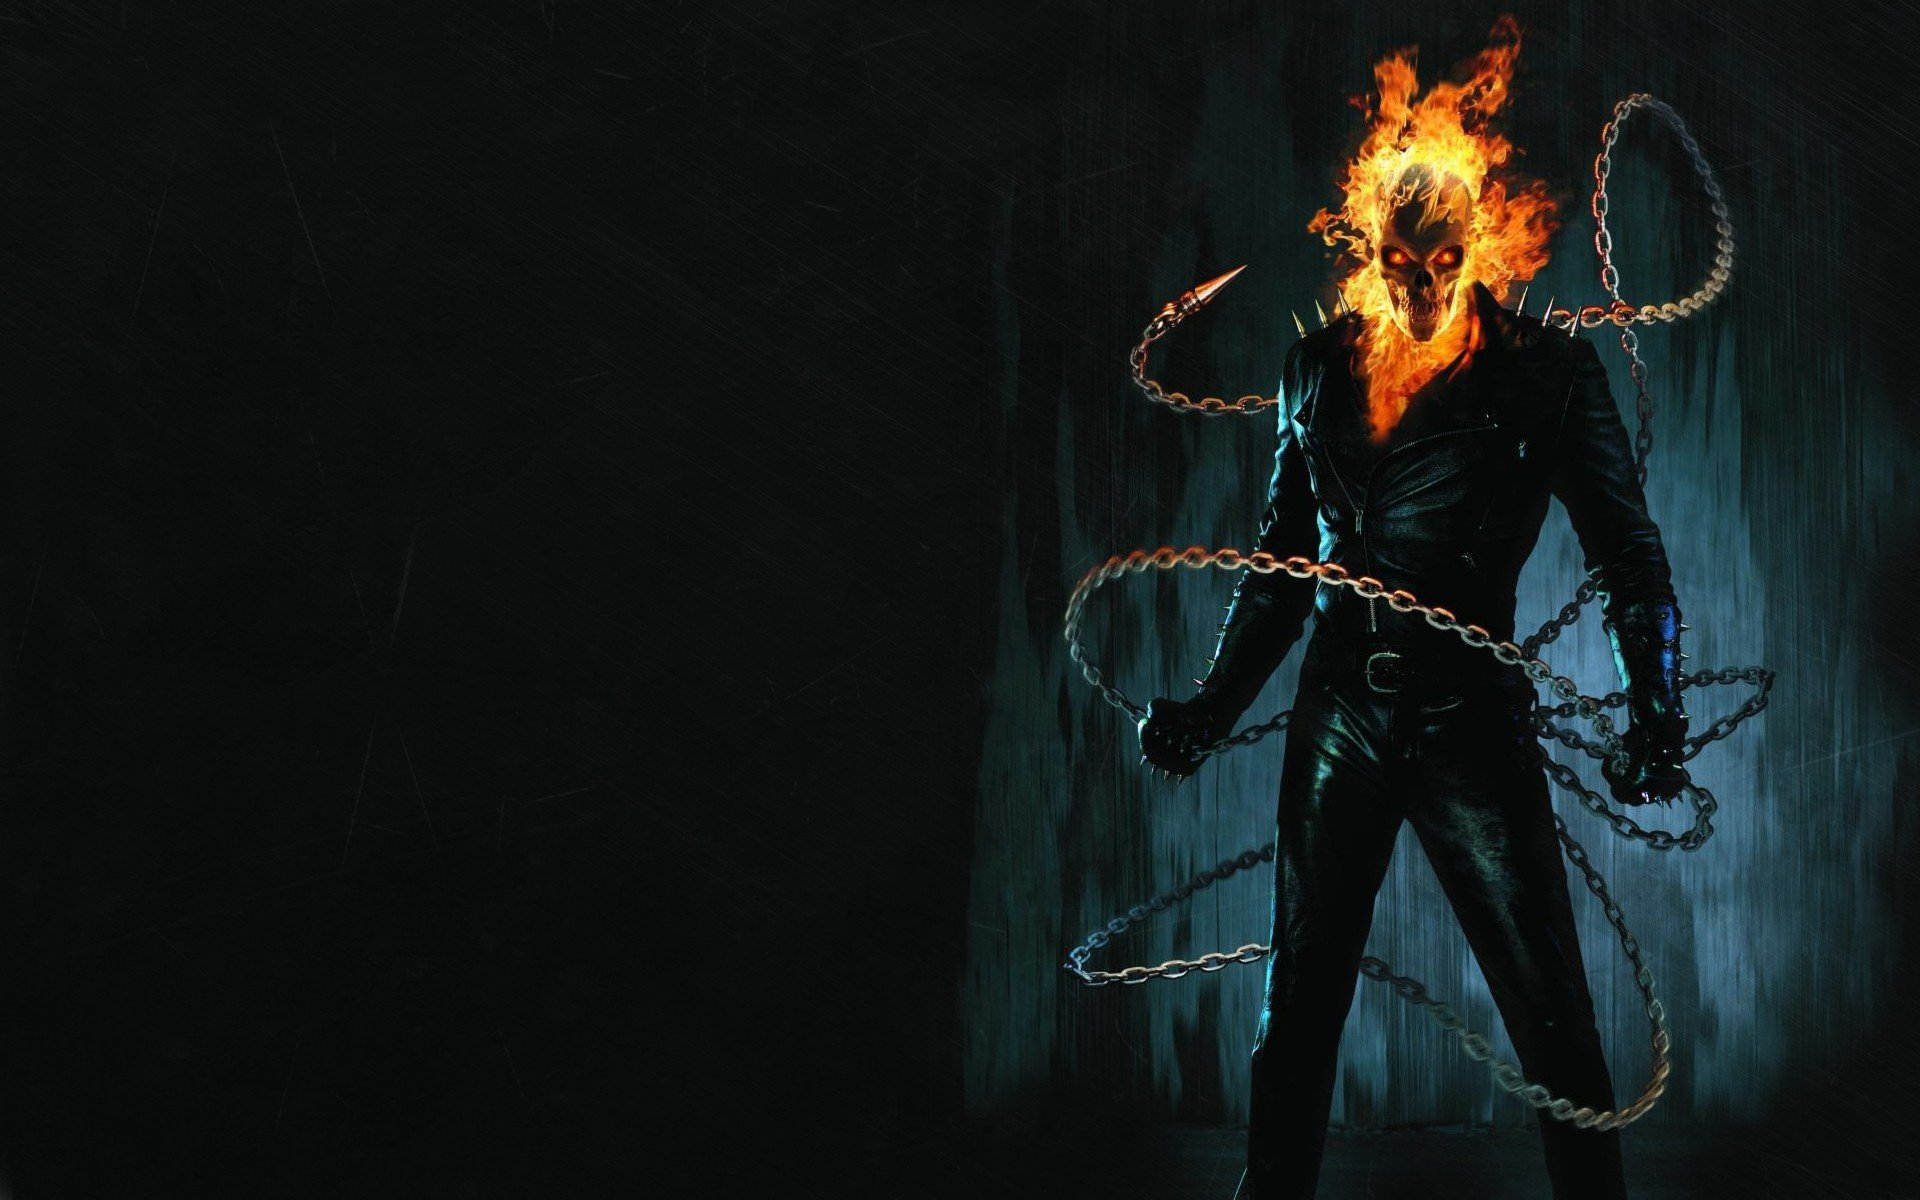 Ghost Rider Wallpapers Hd For Desktop Backgrounds